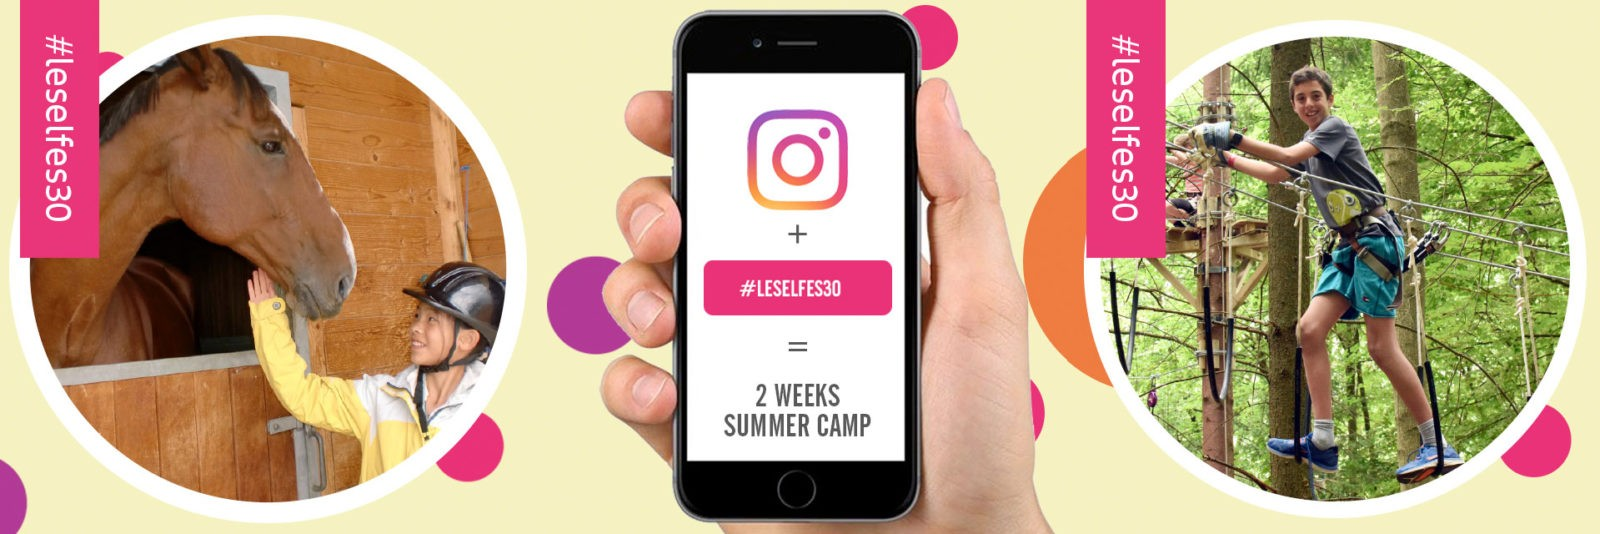 Join Competition to Win 2 Weeks Summer Camp